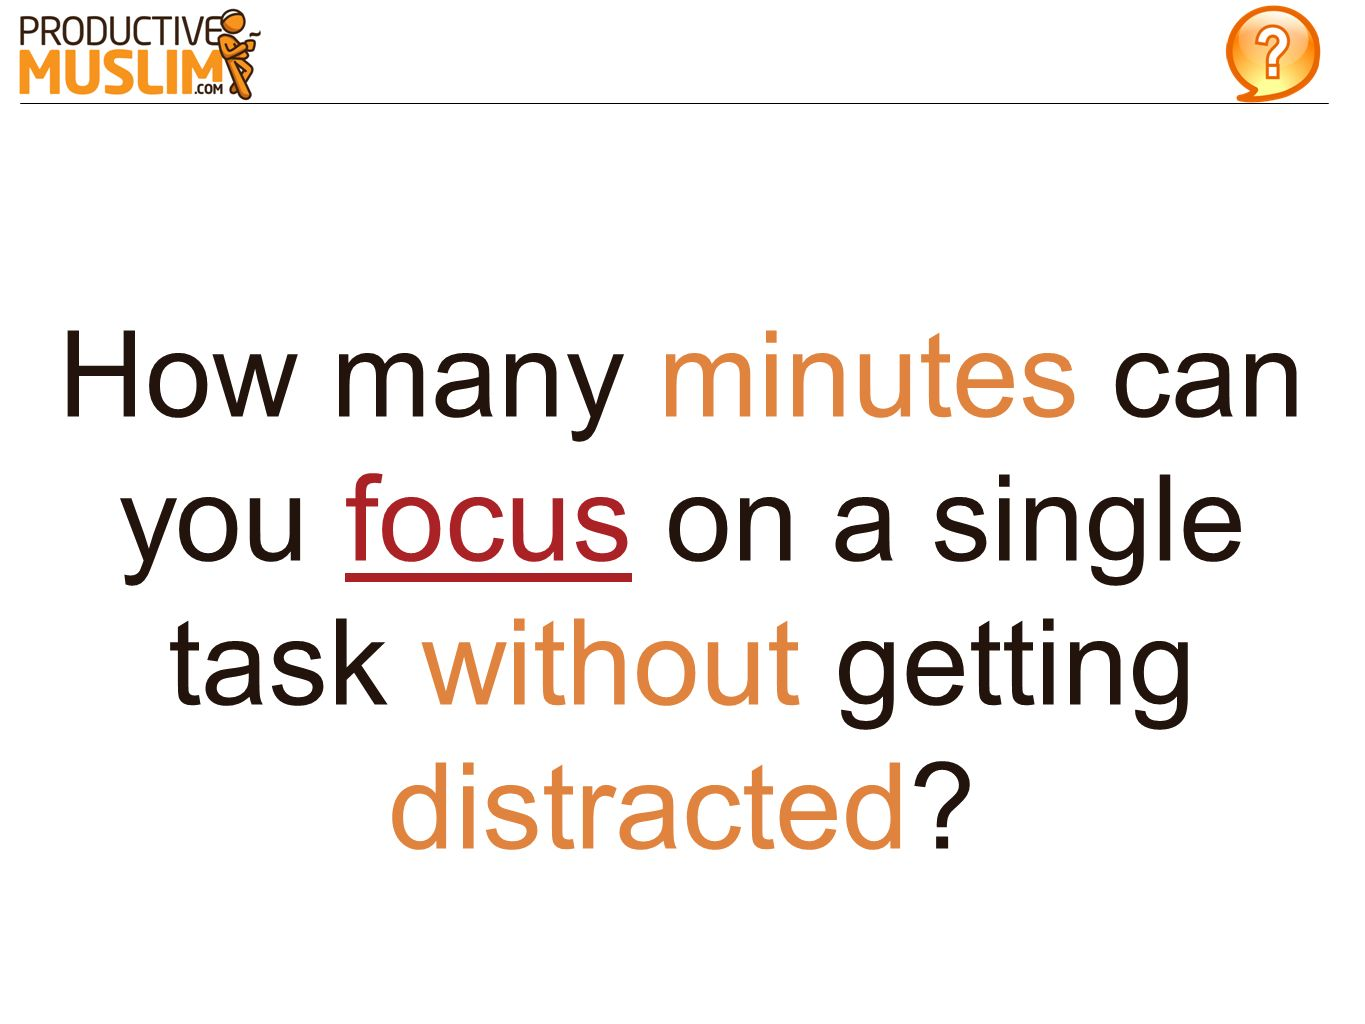 How many minutes can you focus on a single task without getting distracted